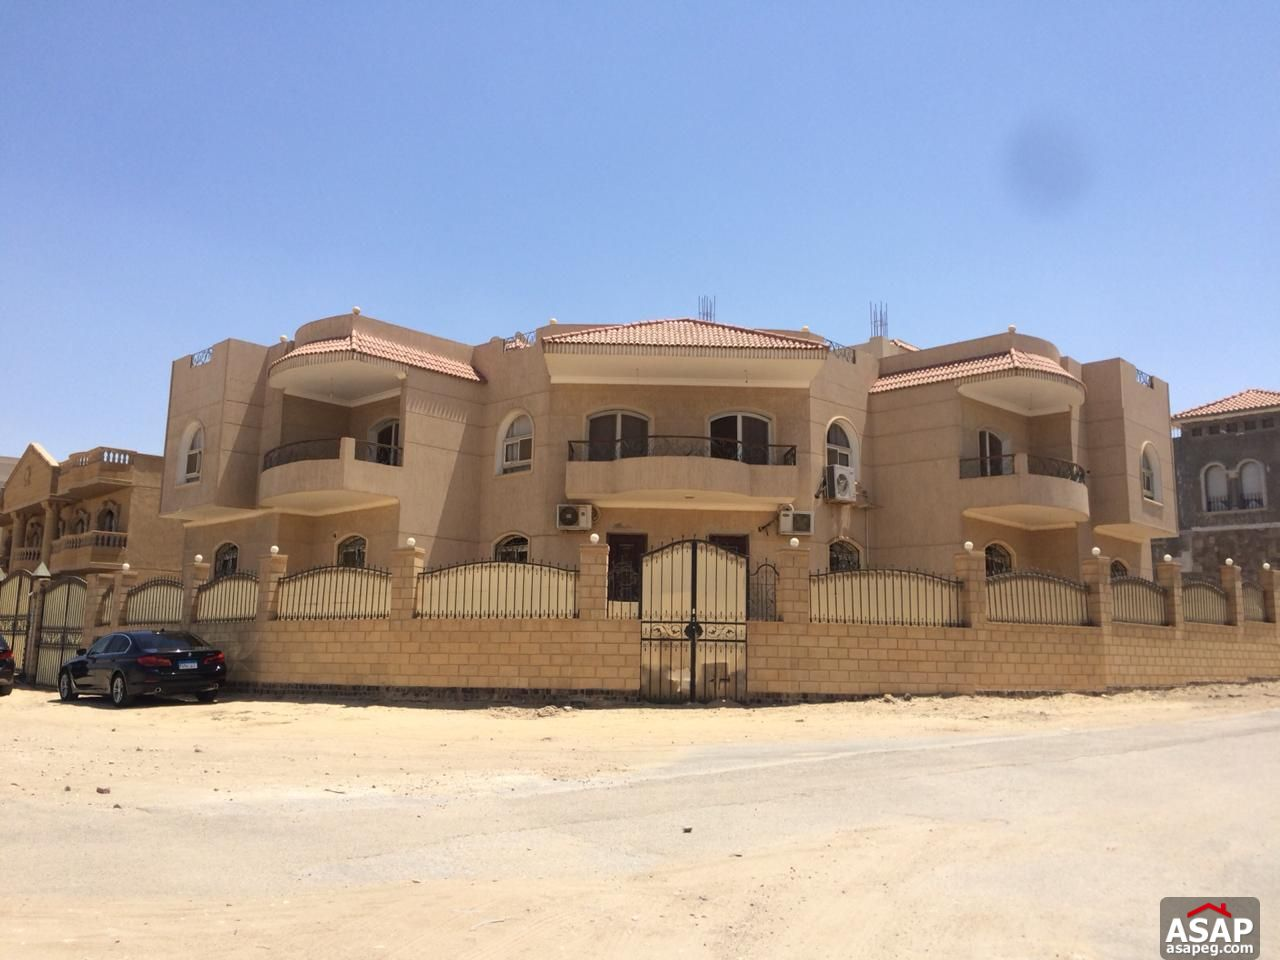 Flat for rent in Sheikh Zayed City 3rd District